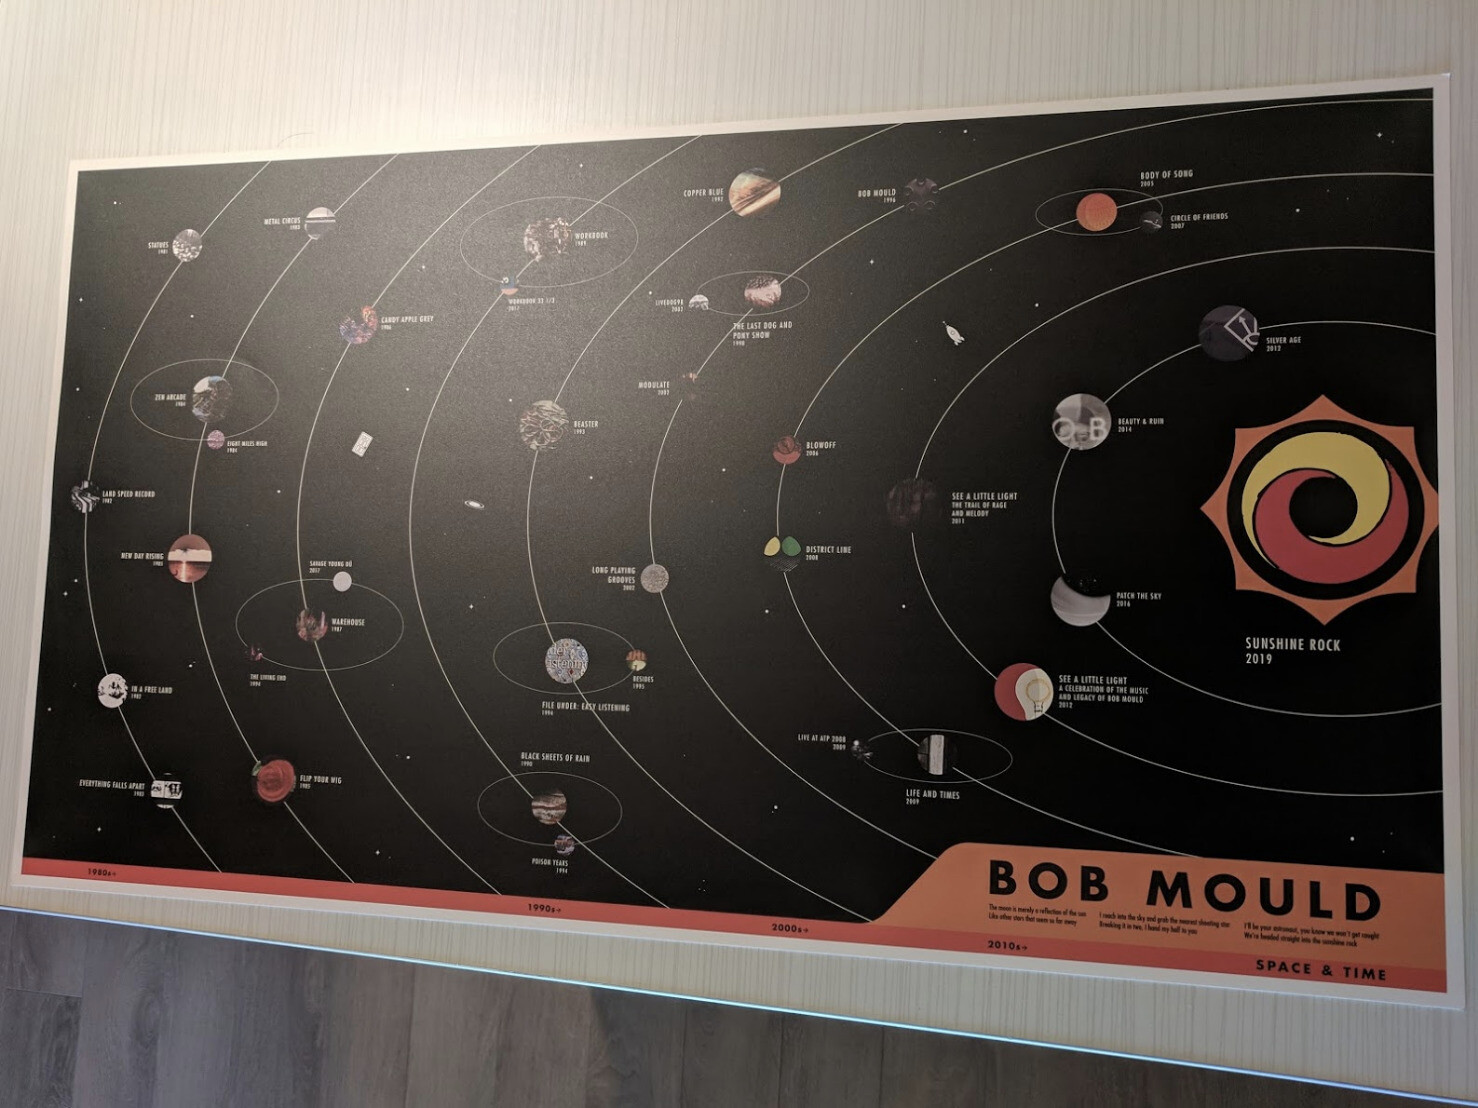 A poster of all Bob Mould's albums arranged as planets in orbit of a sun